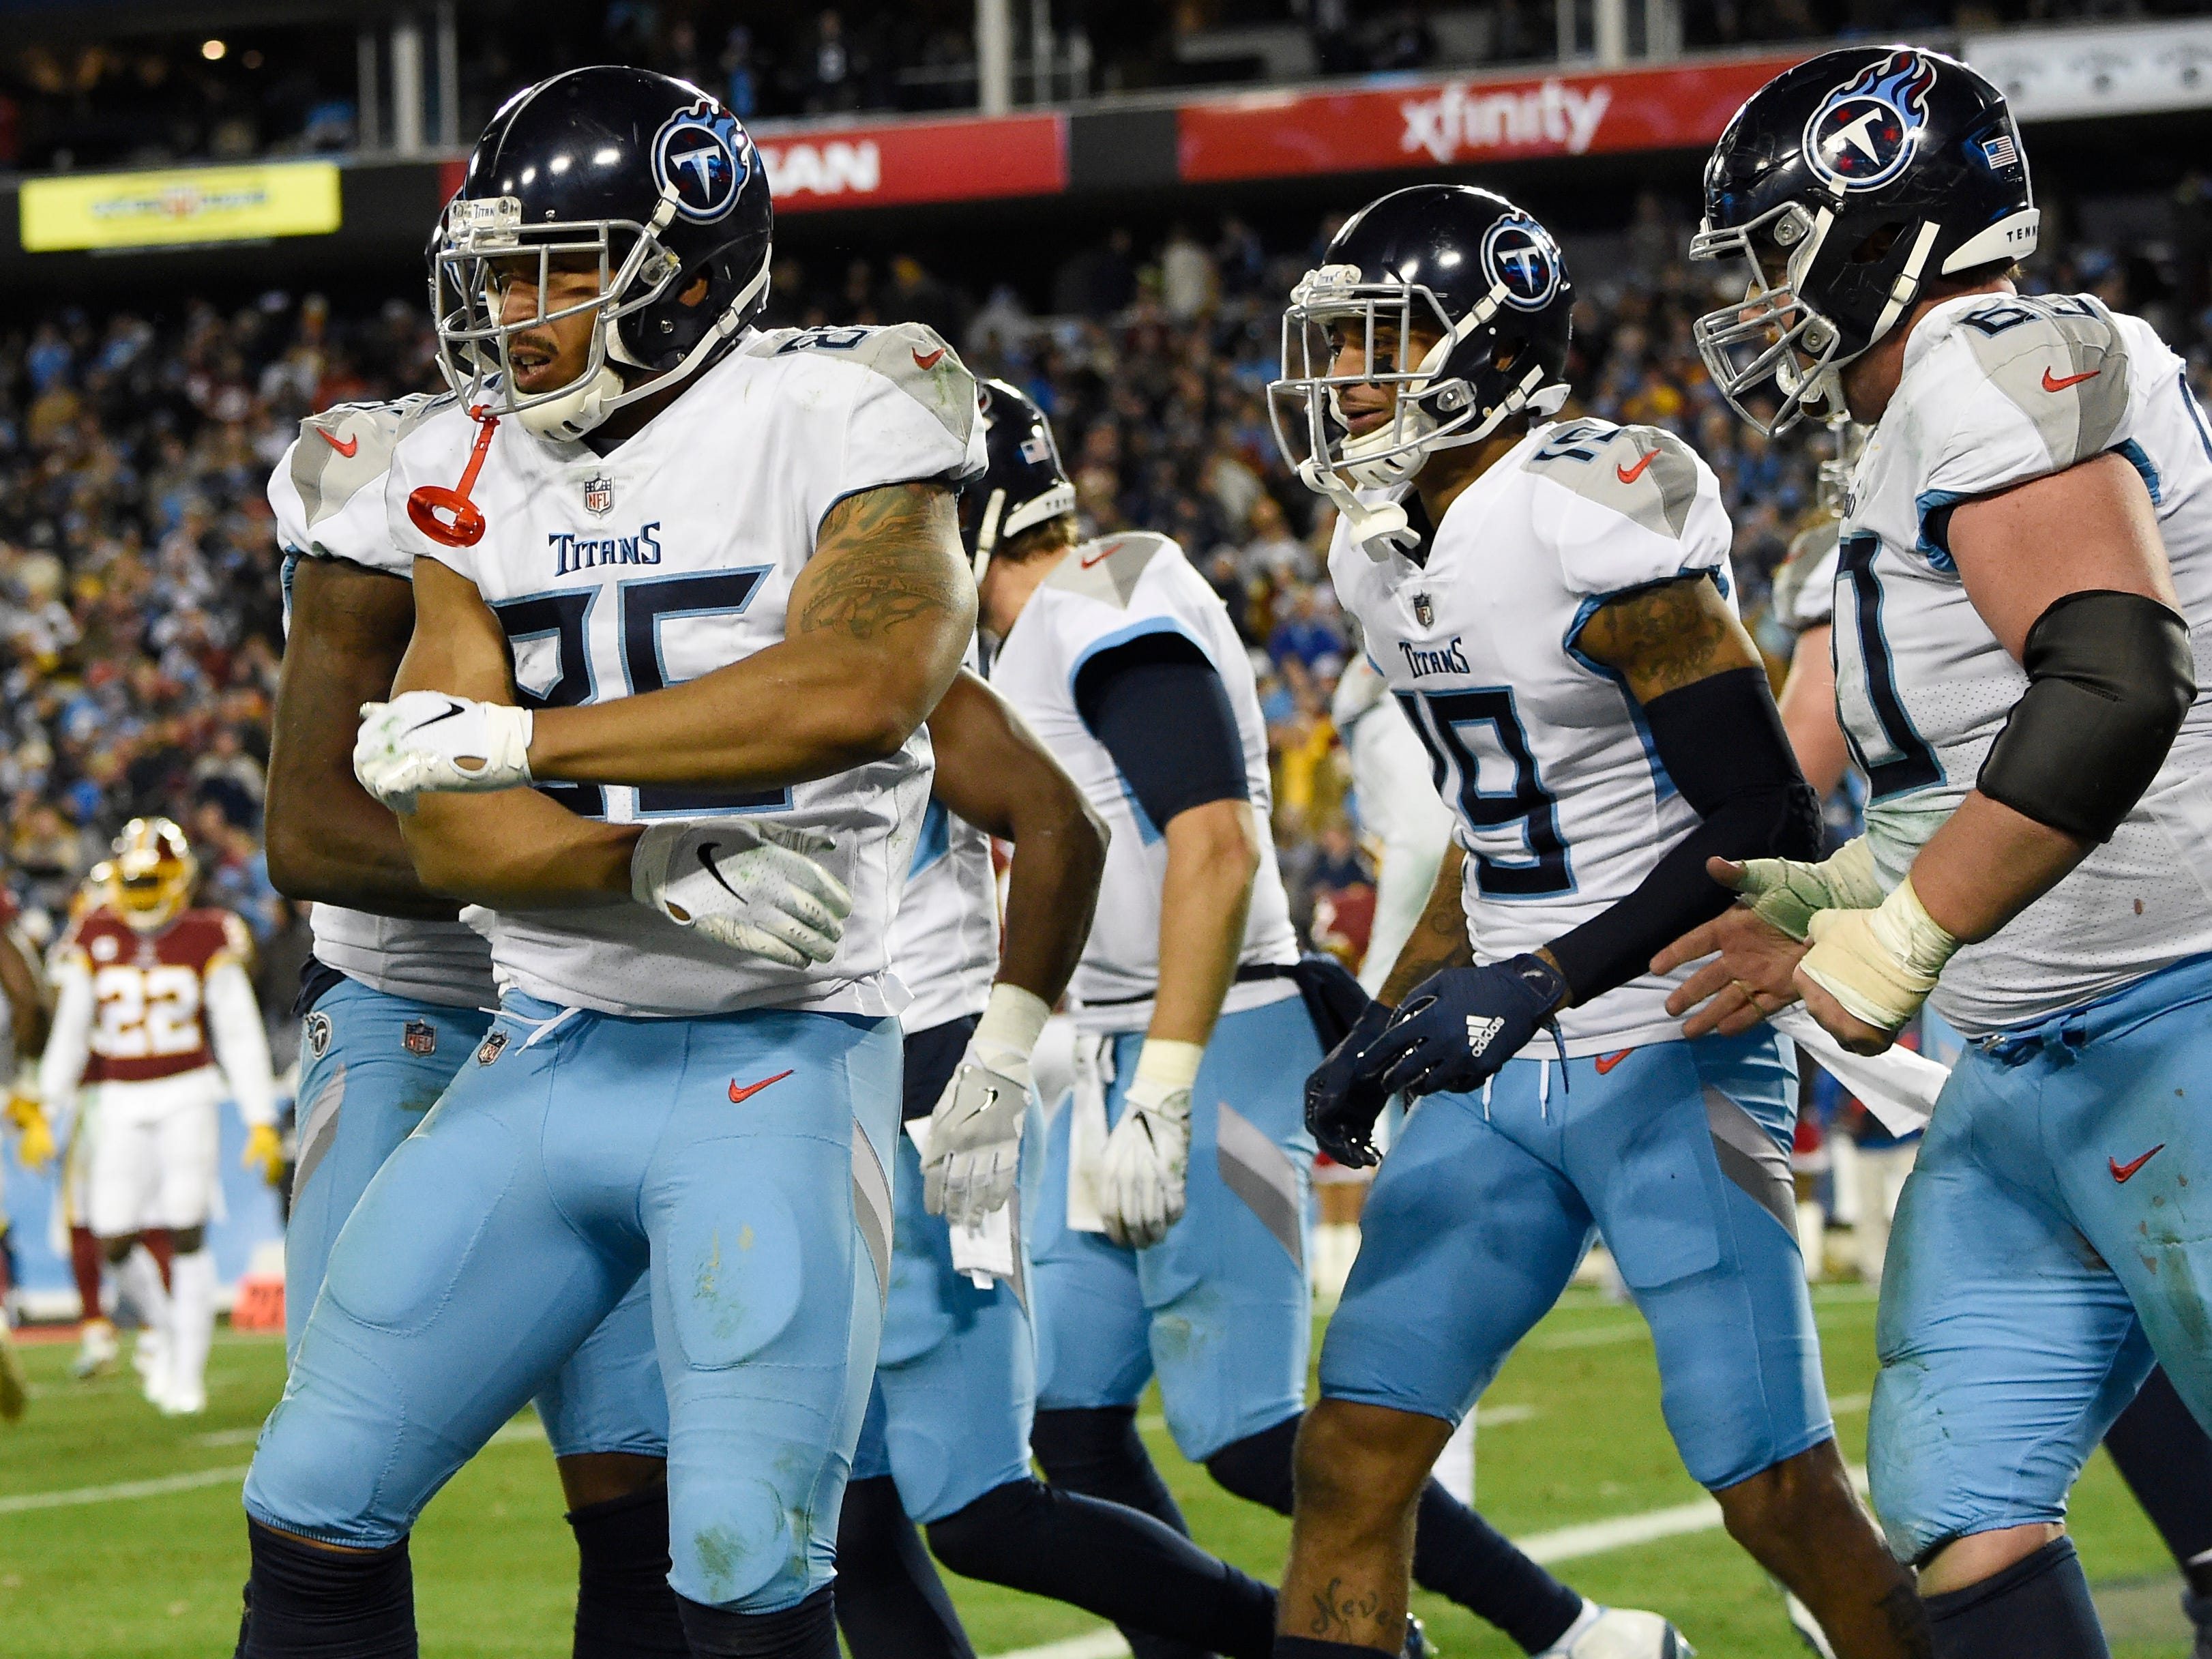 Titans tight end MyCole Pruitt (85) celebrates his touchdown with teammates in the fourth quarter at Nissan Stadium Saturday, Dec. 22, 2018, in Nashville, Tenn.